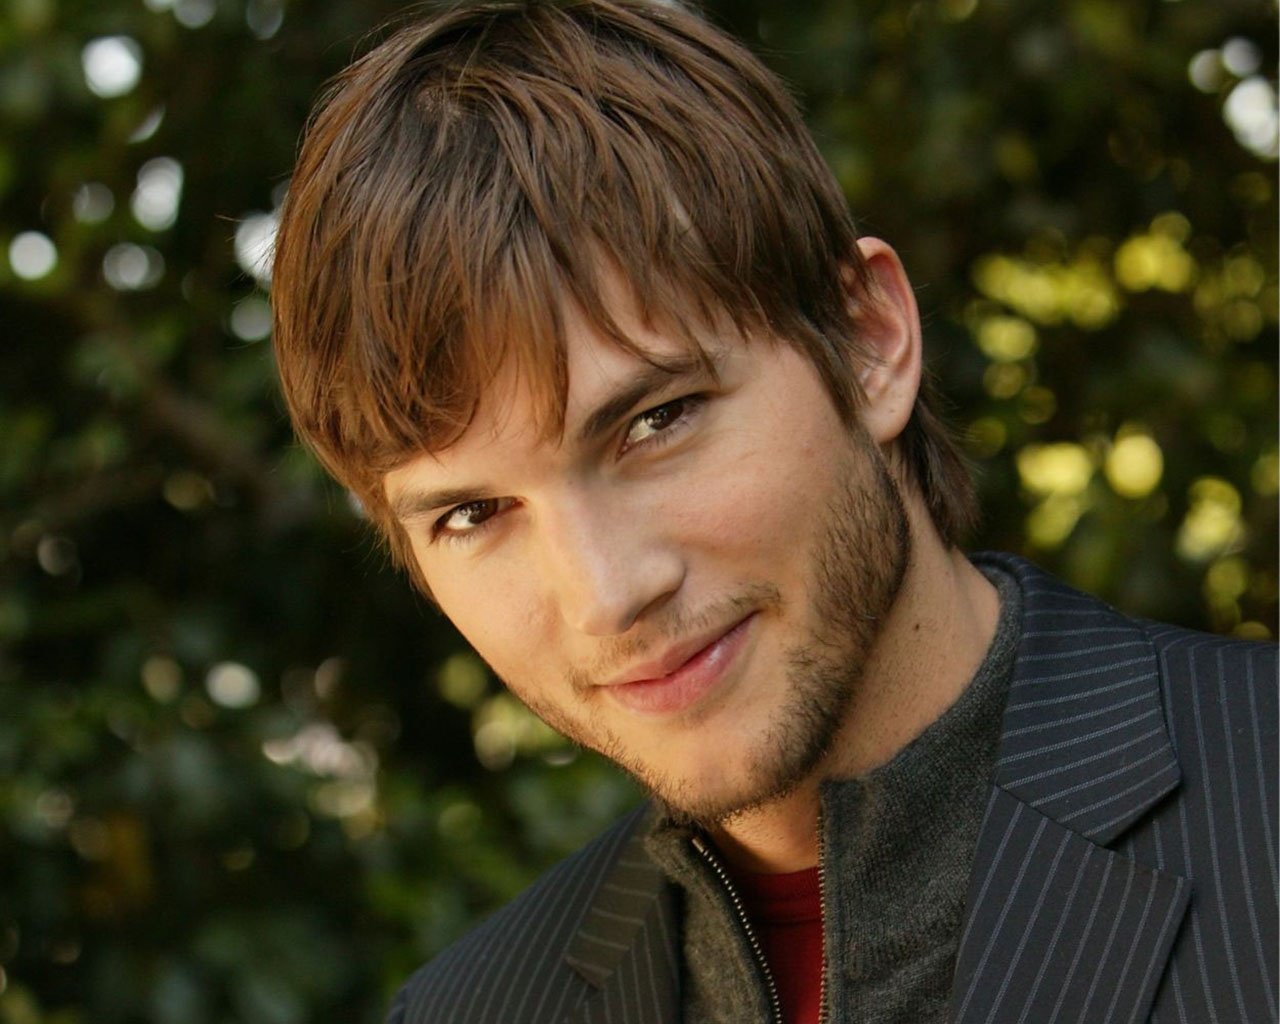 Ashton kutcher wallpapers 01 bentang jagad for The ashton